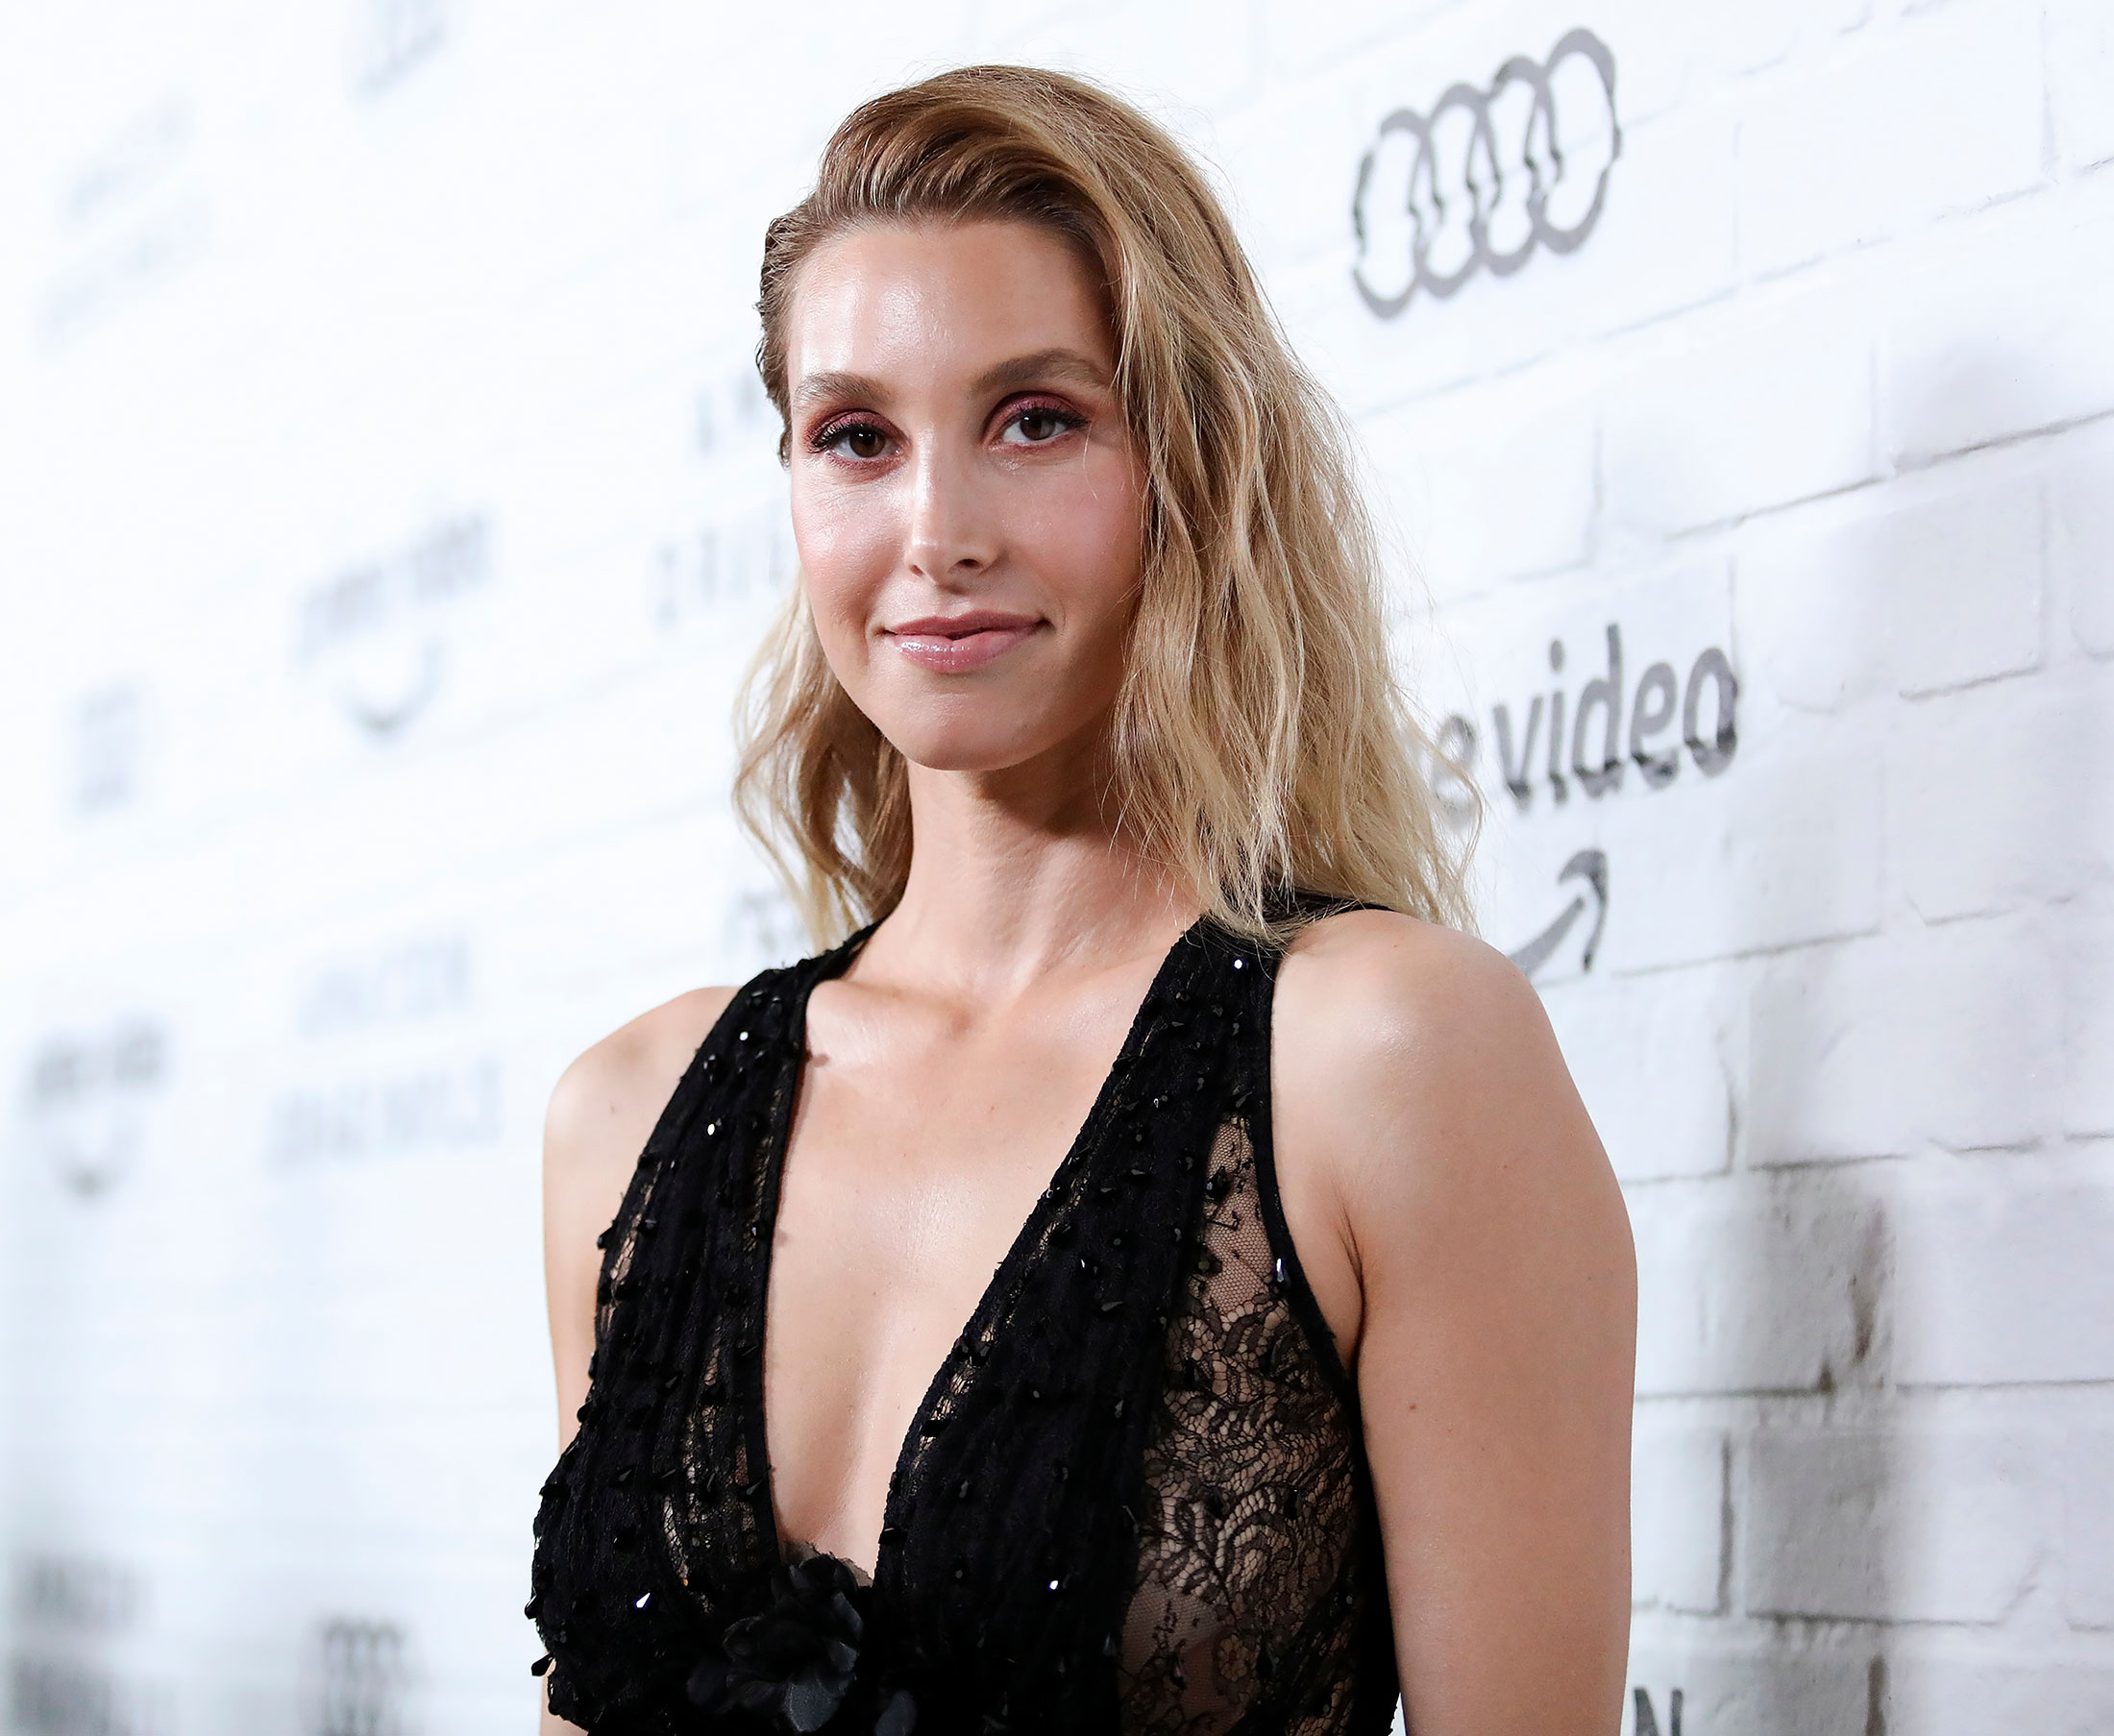 Why Whitney Port Isn't Ready for Adoption 'Yet' After 2 Miscarriages